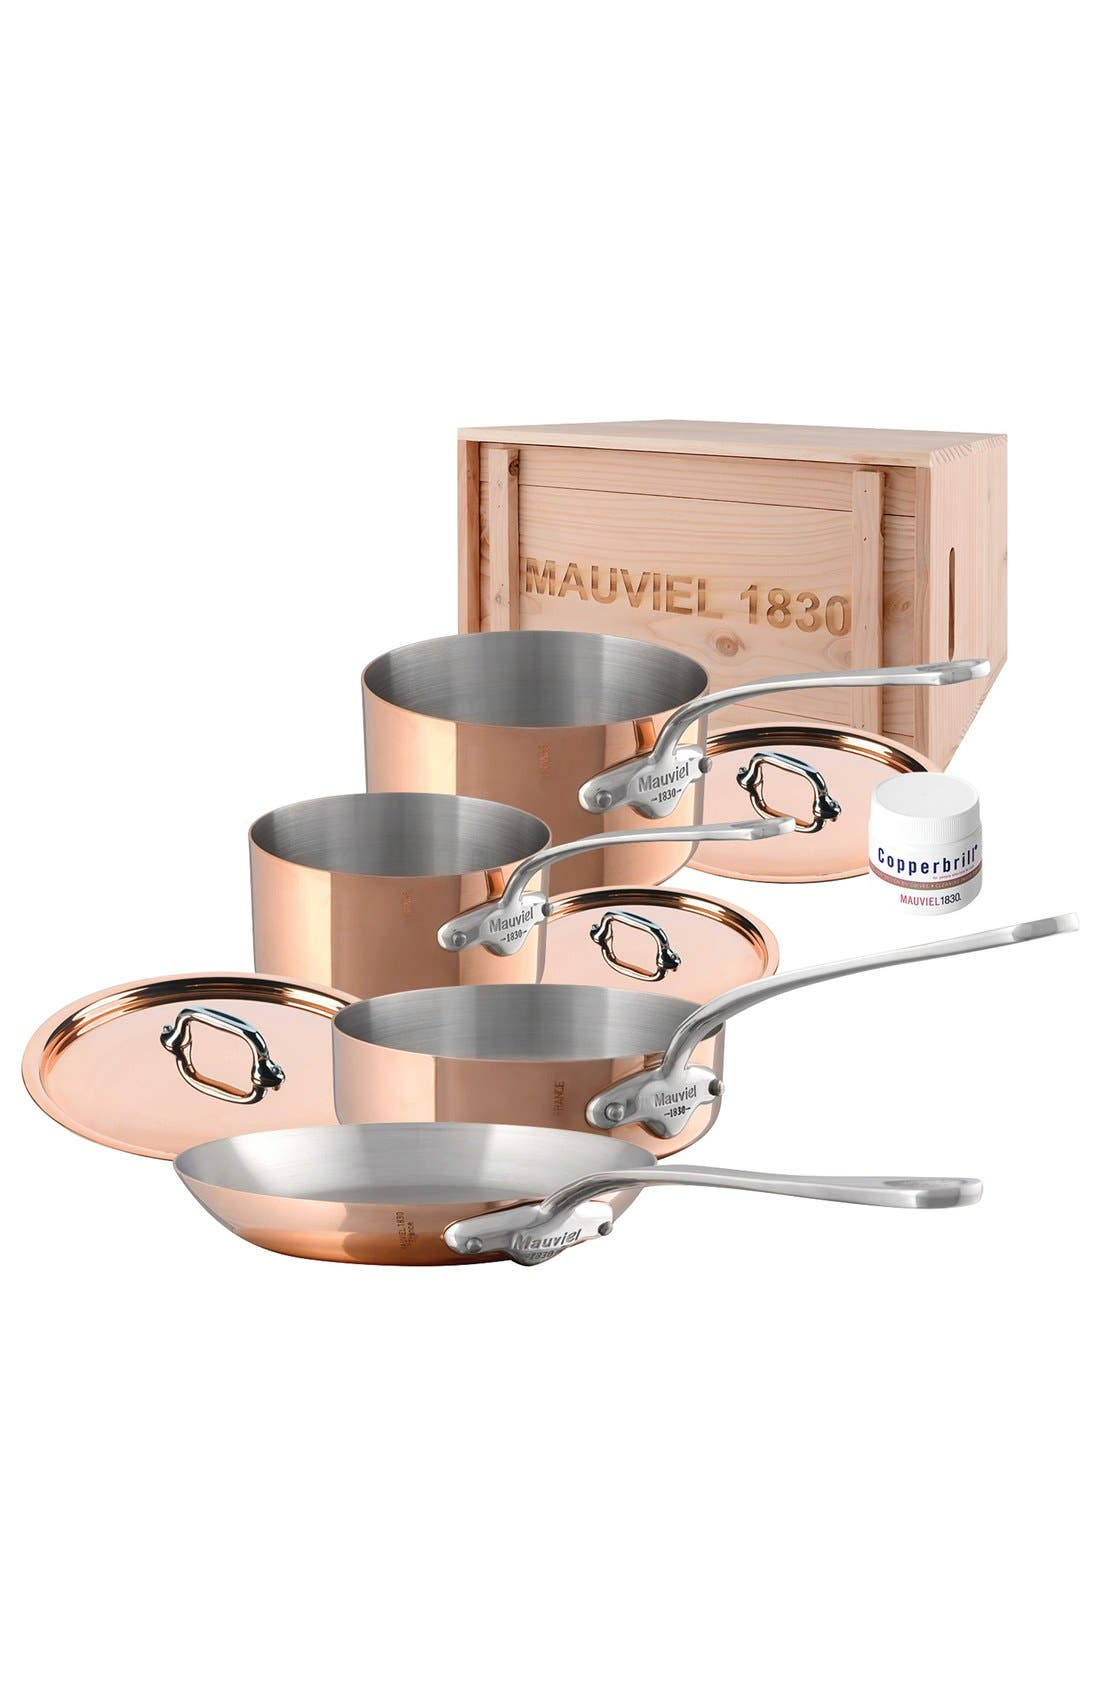 M'héritage - M'150s 7-Piece Copper & Stainless Steel Cookware Set,                         Main,                         color, Metallic Rust/Copper